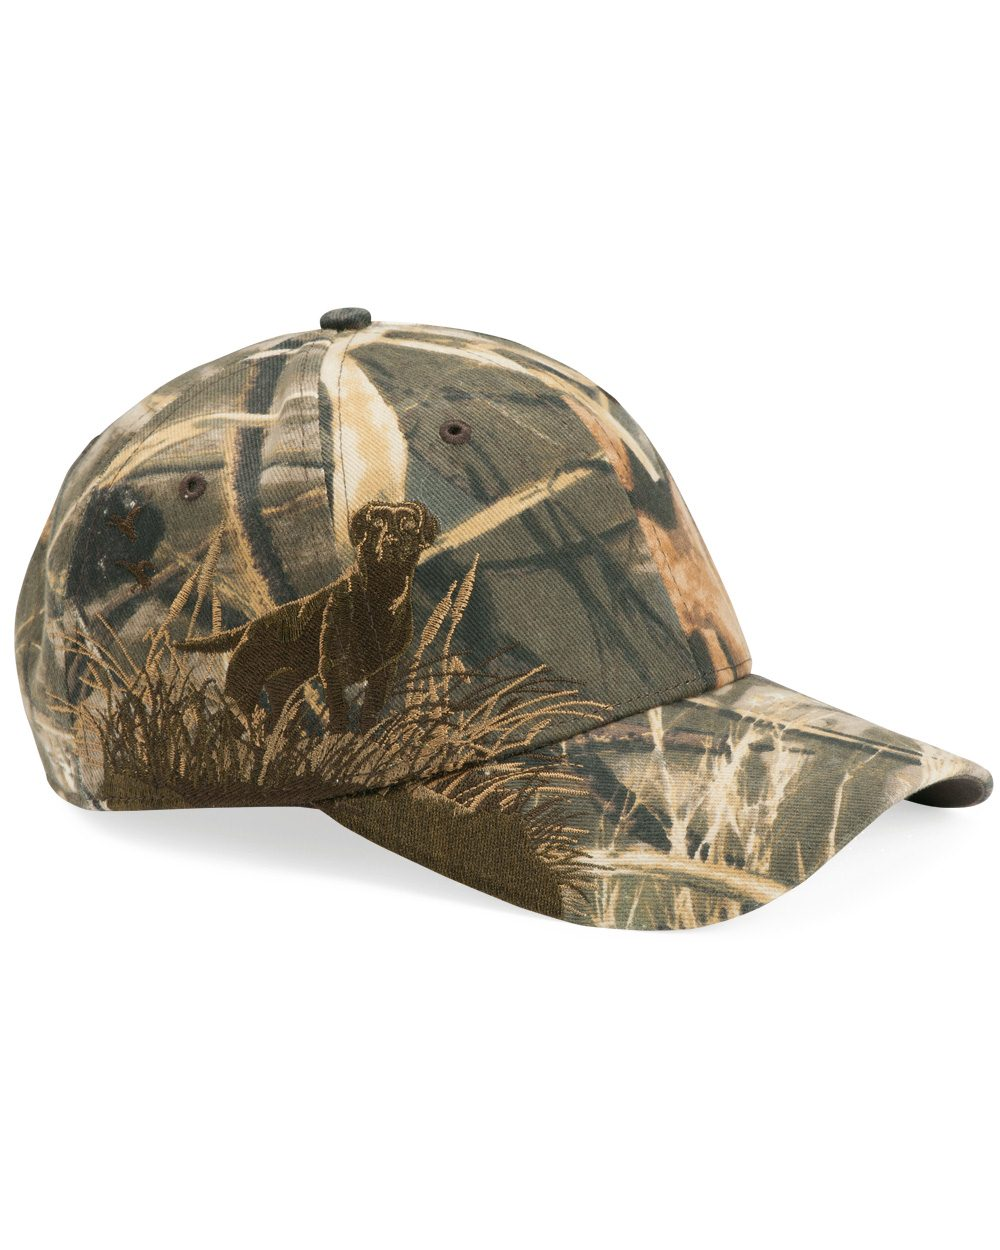 DRI DUCK Wildlife Series Labrador Caps - 3253